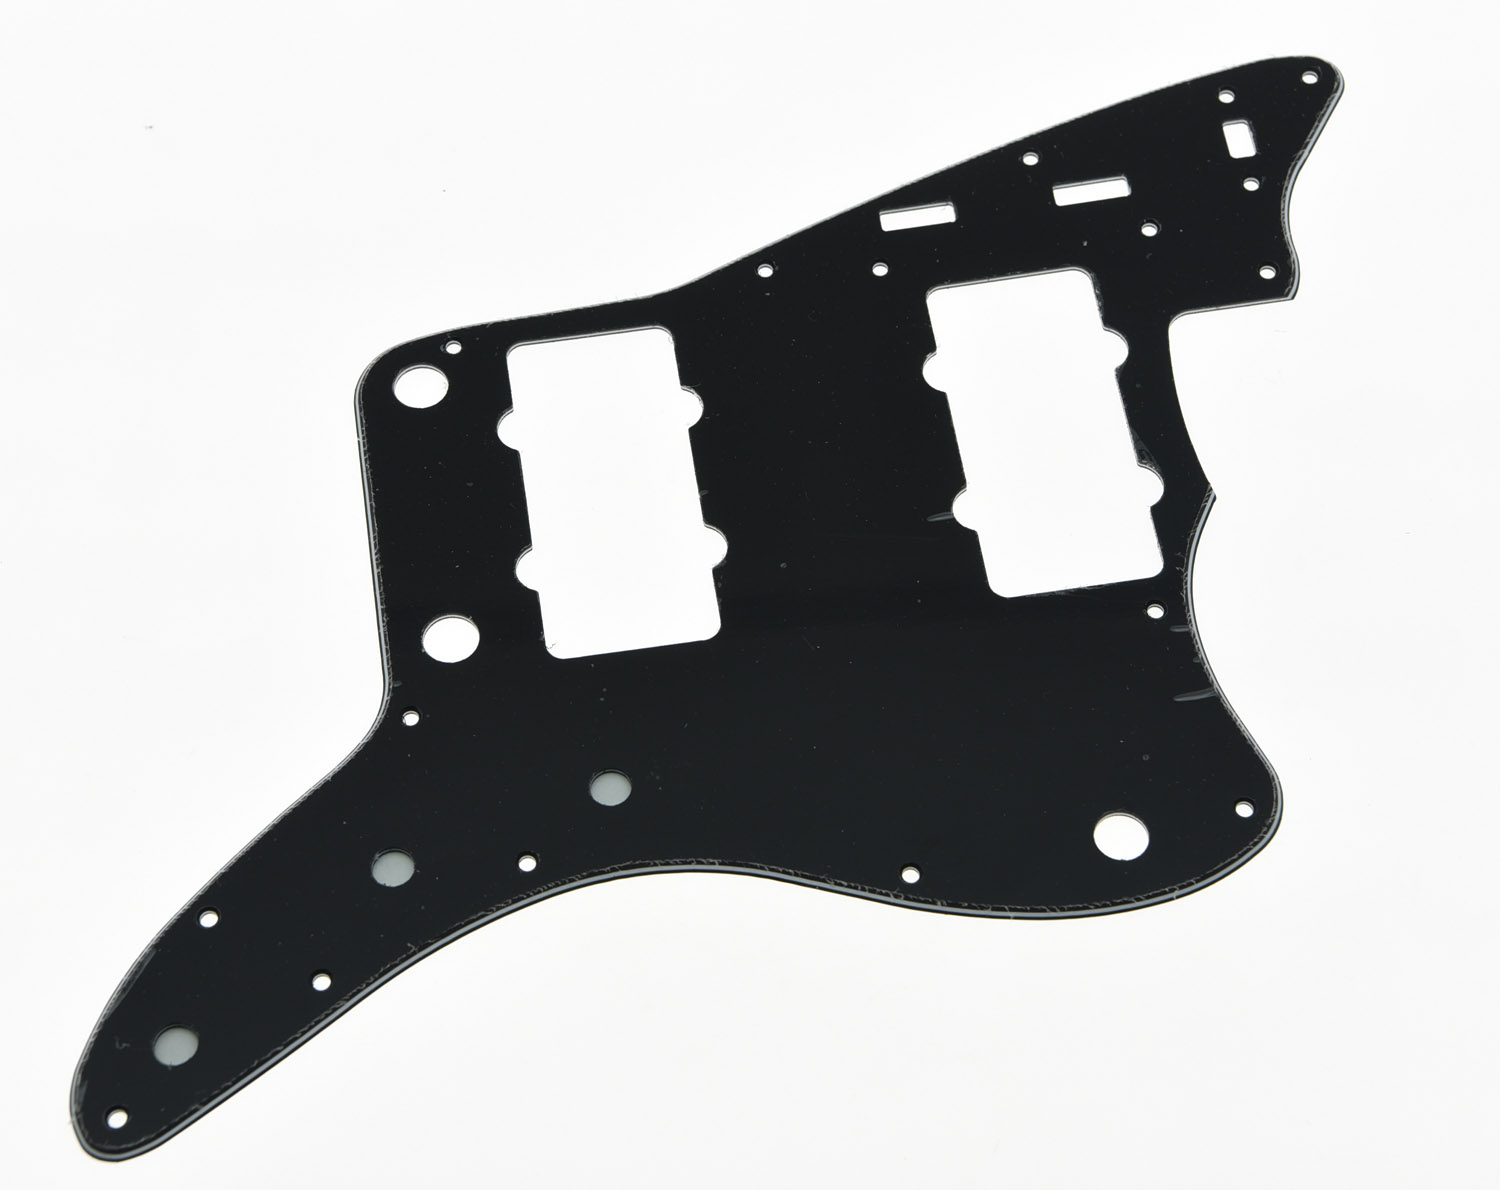 KAISH Black 3 Ply Guitar Pickguard Scratch Plate for American Jazzmaster kaish sg standard full face guitar pickguard scratch plate light cream with screws